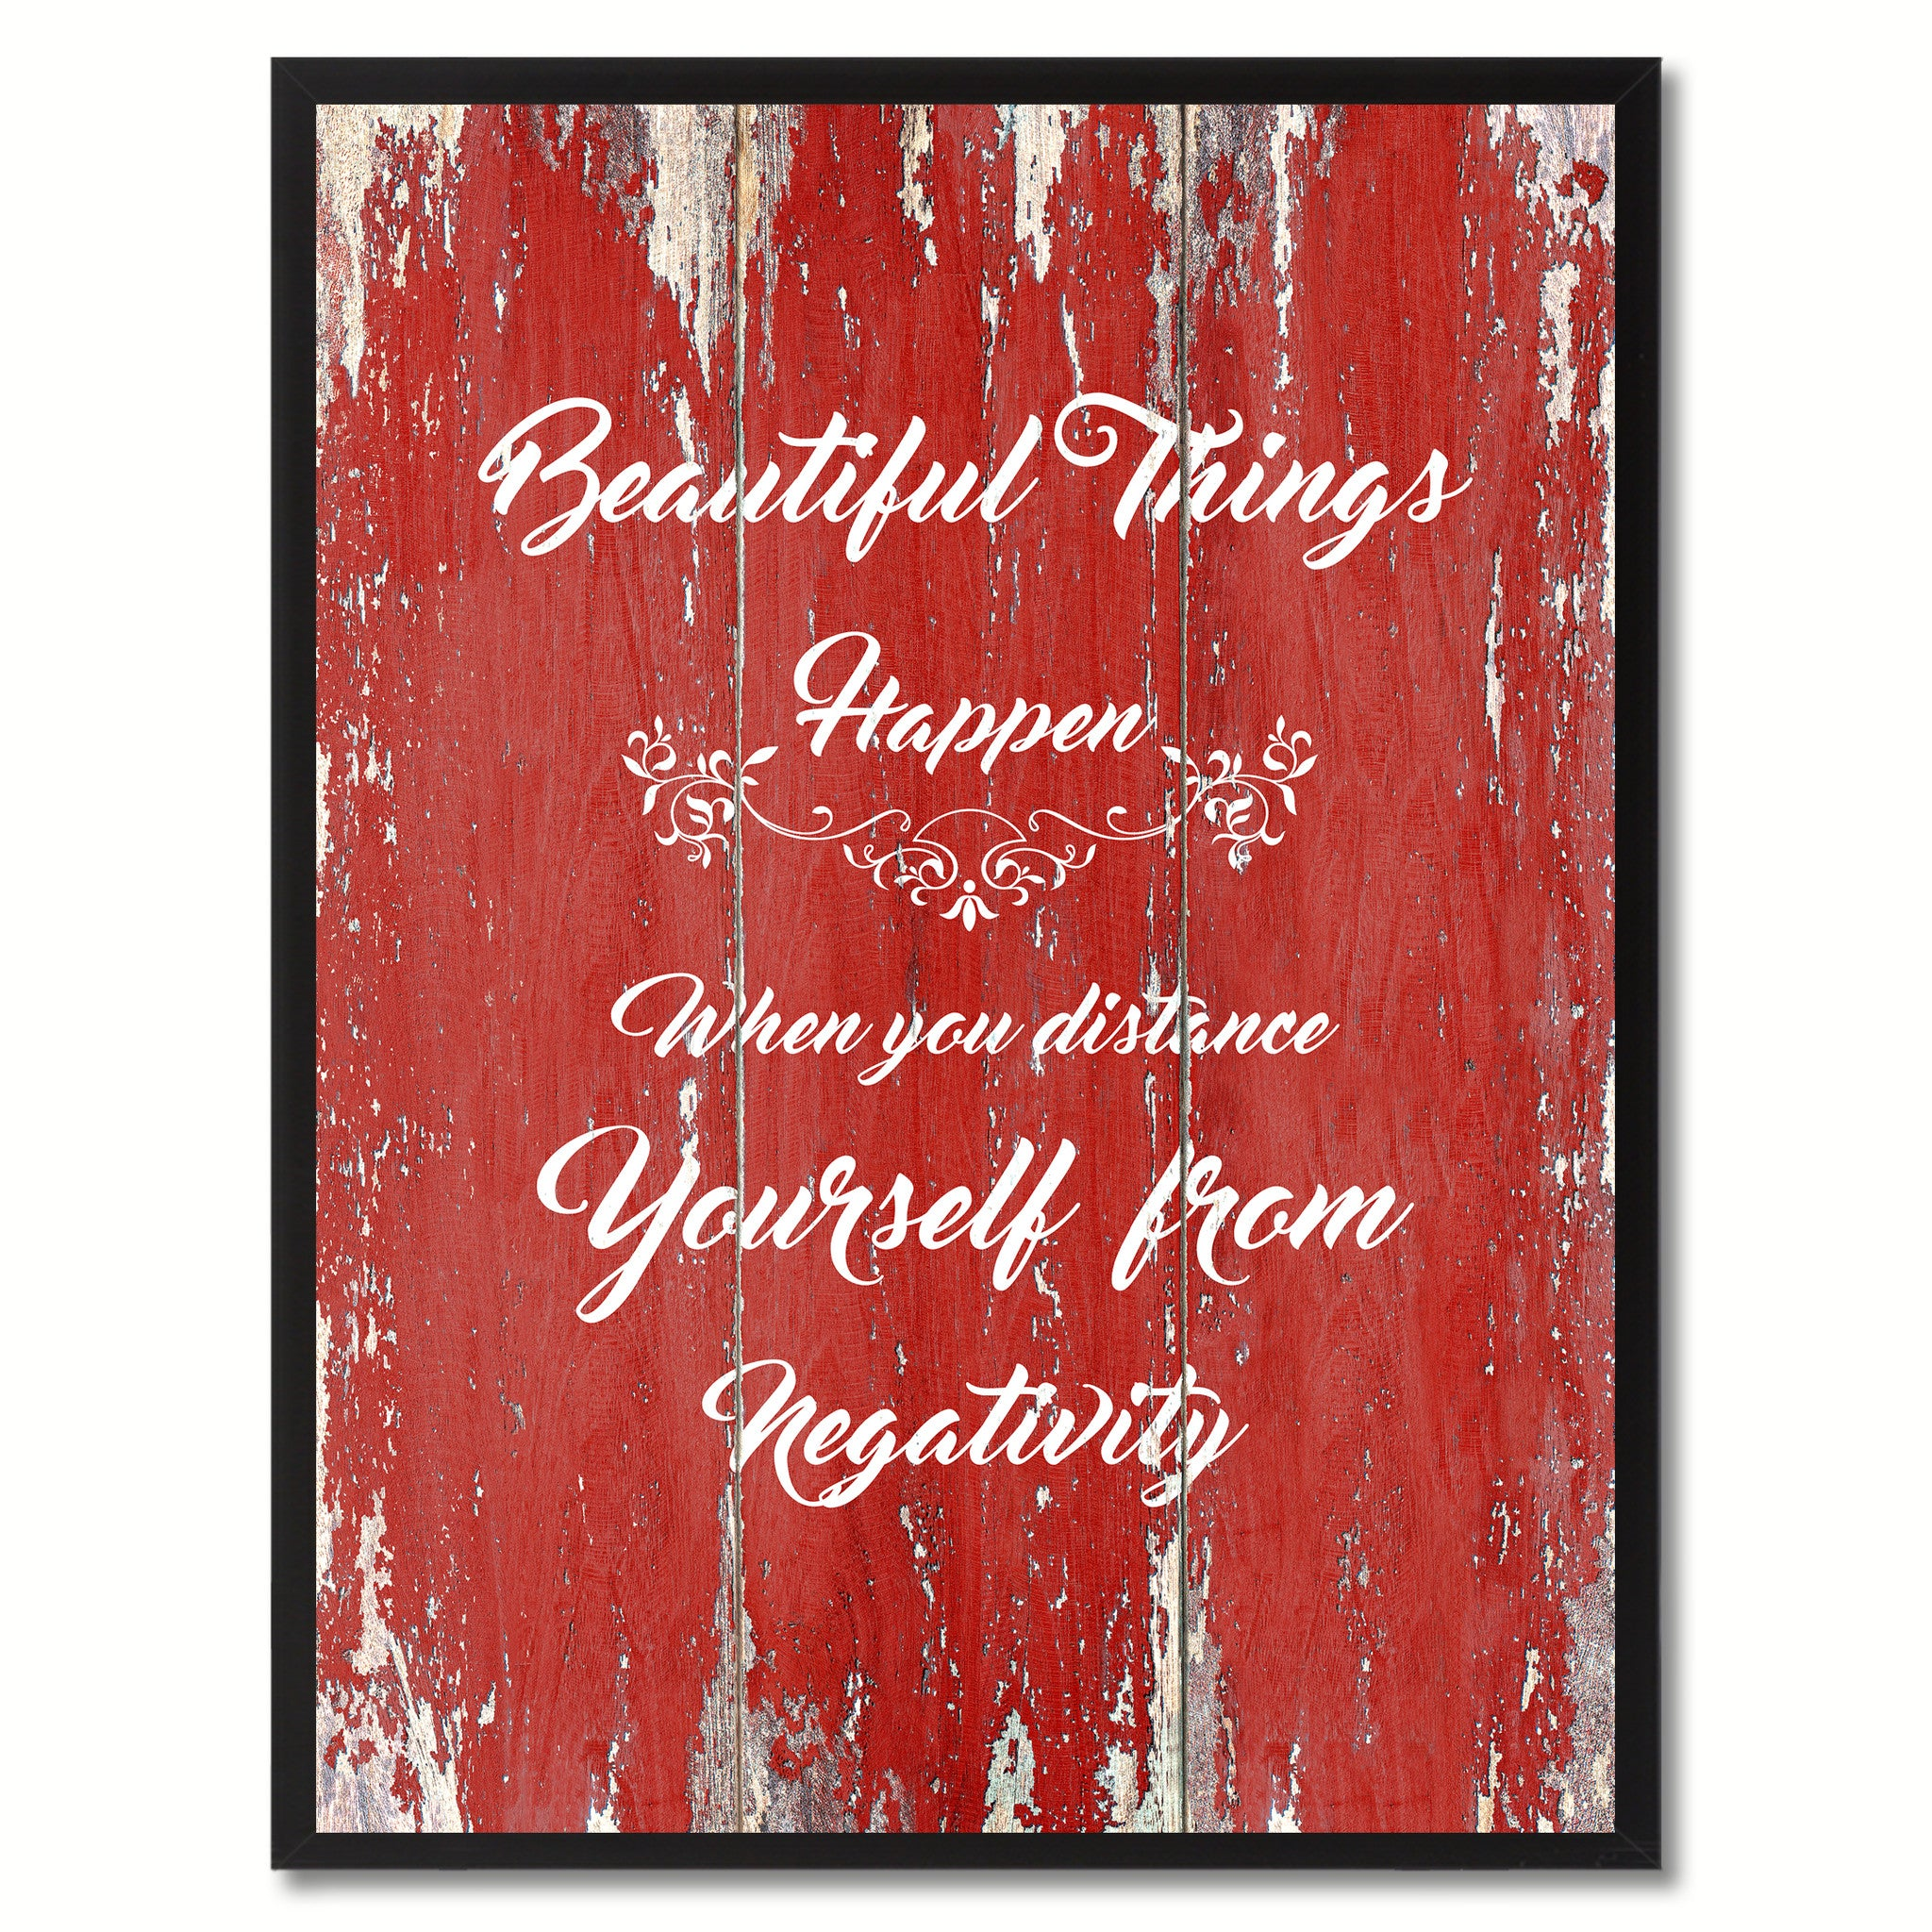 Beautiful Things Happen When you distance Yourself From Negativity Quote Saying Gift Ideas Home Décor Wall Art